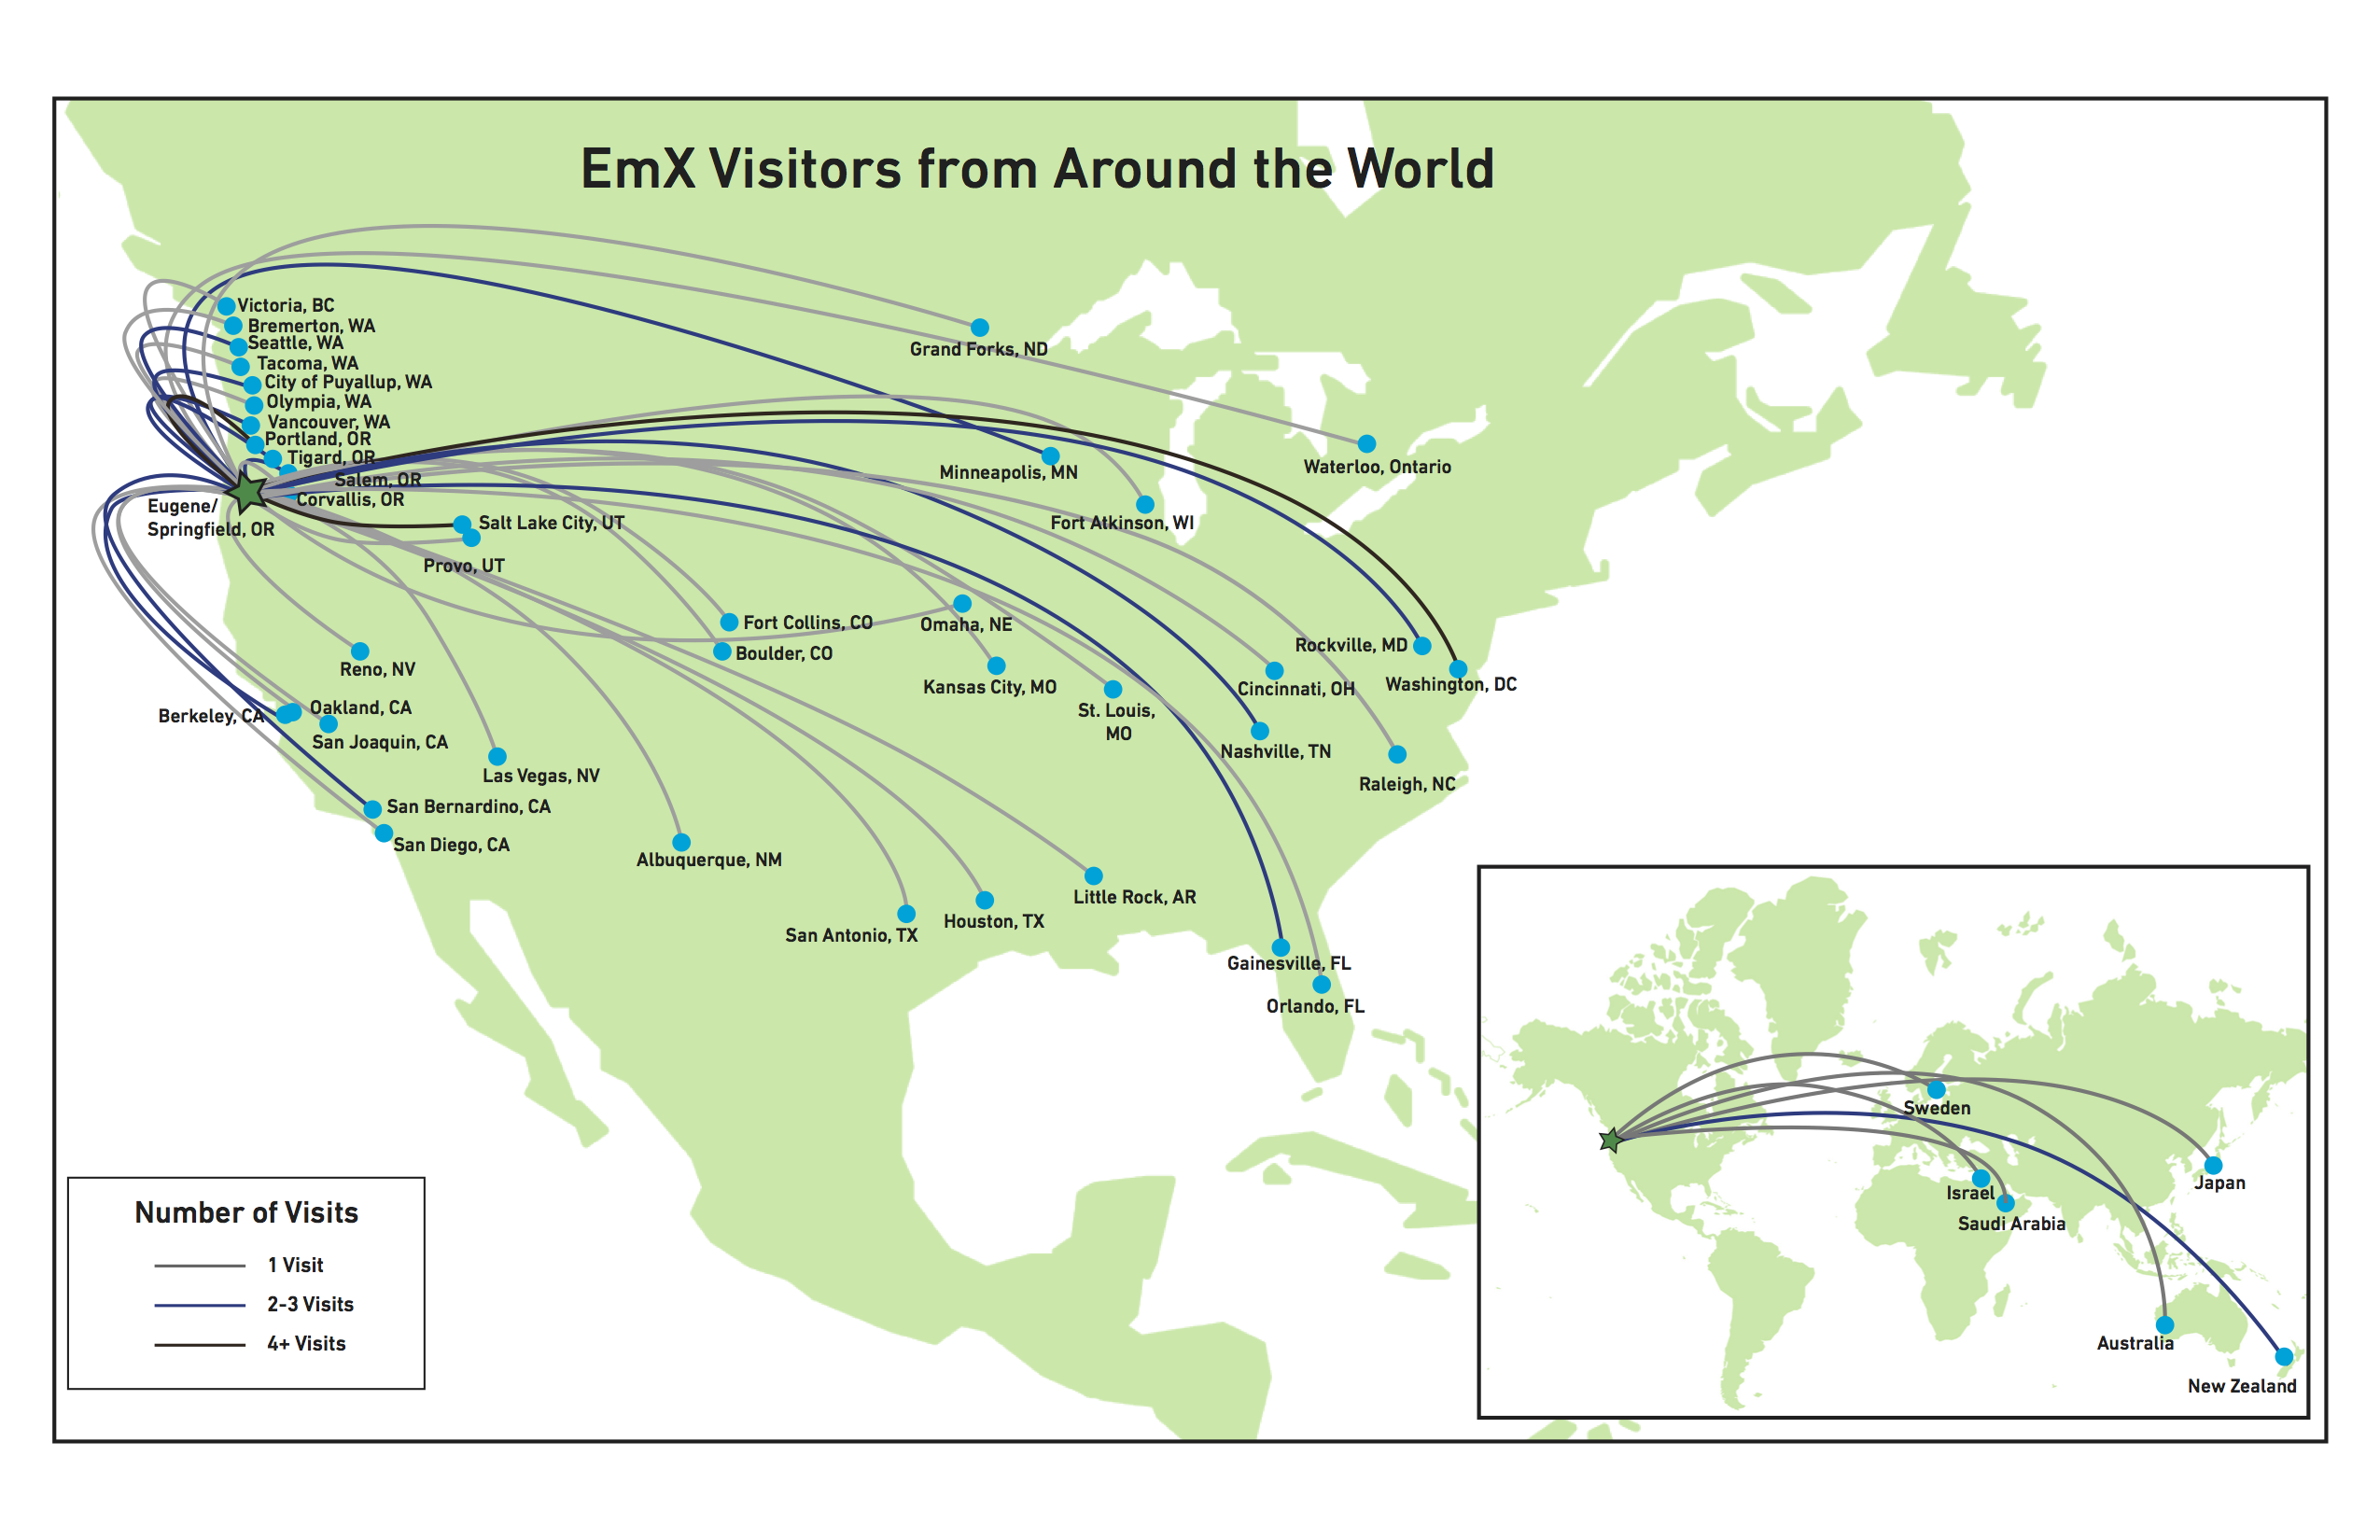 emx visitors global world map 11 3 15